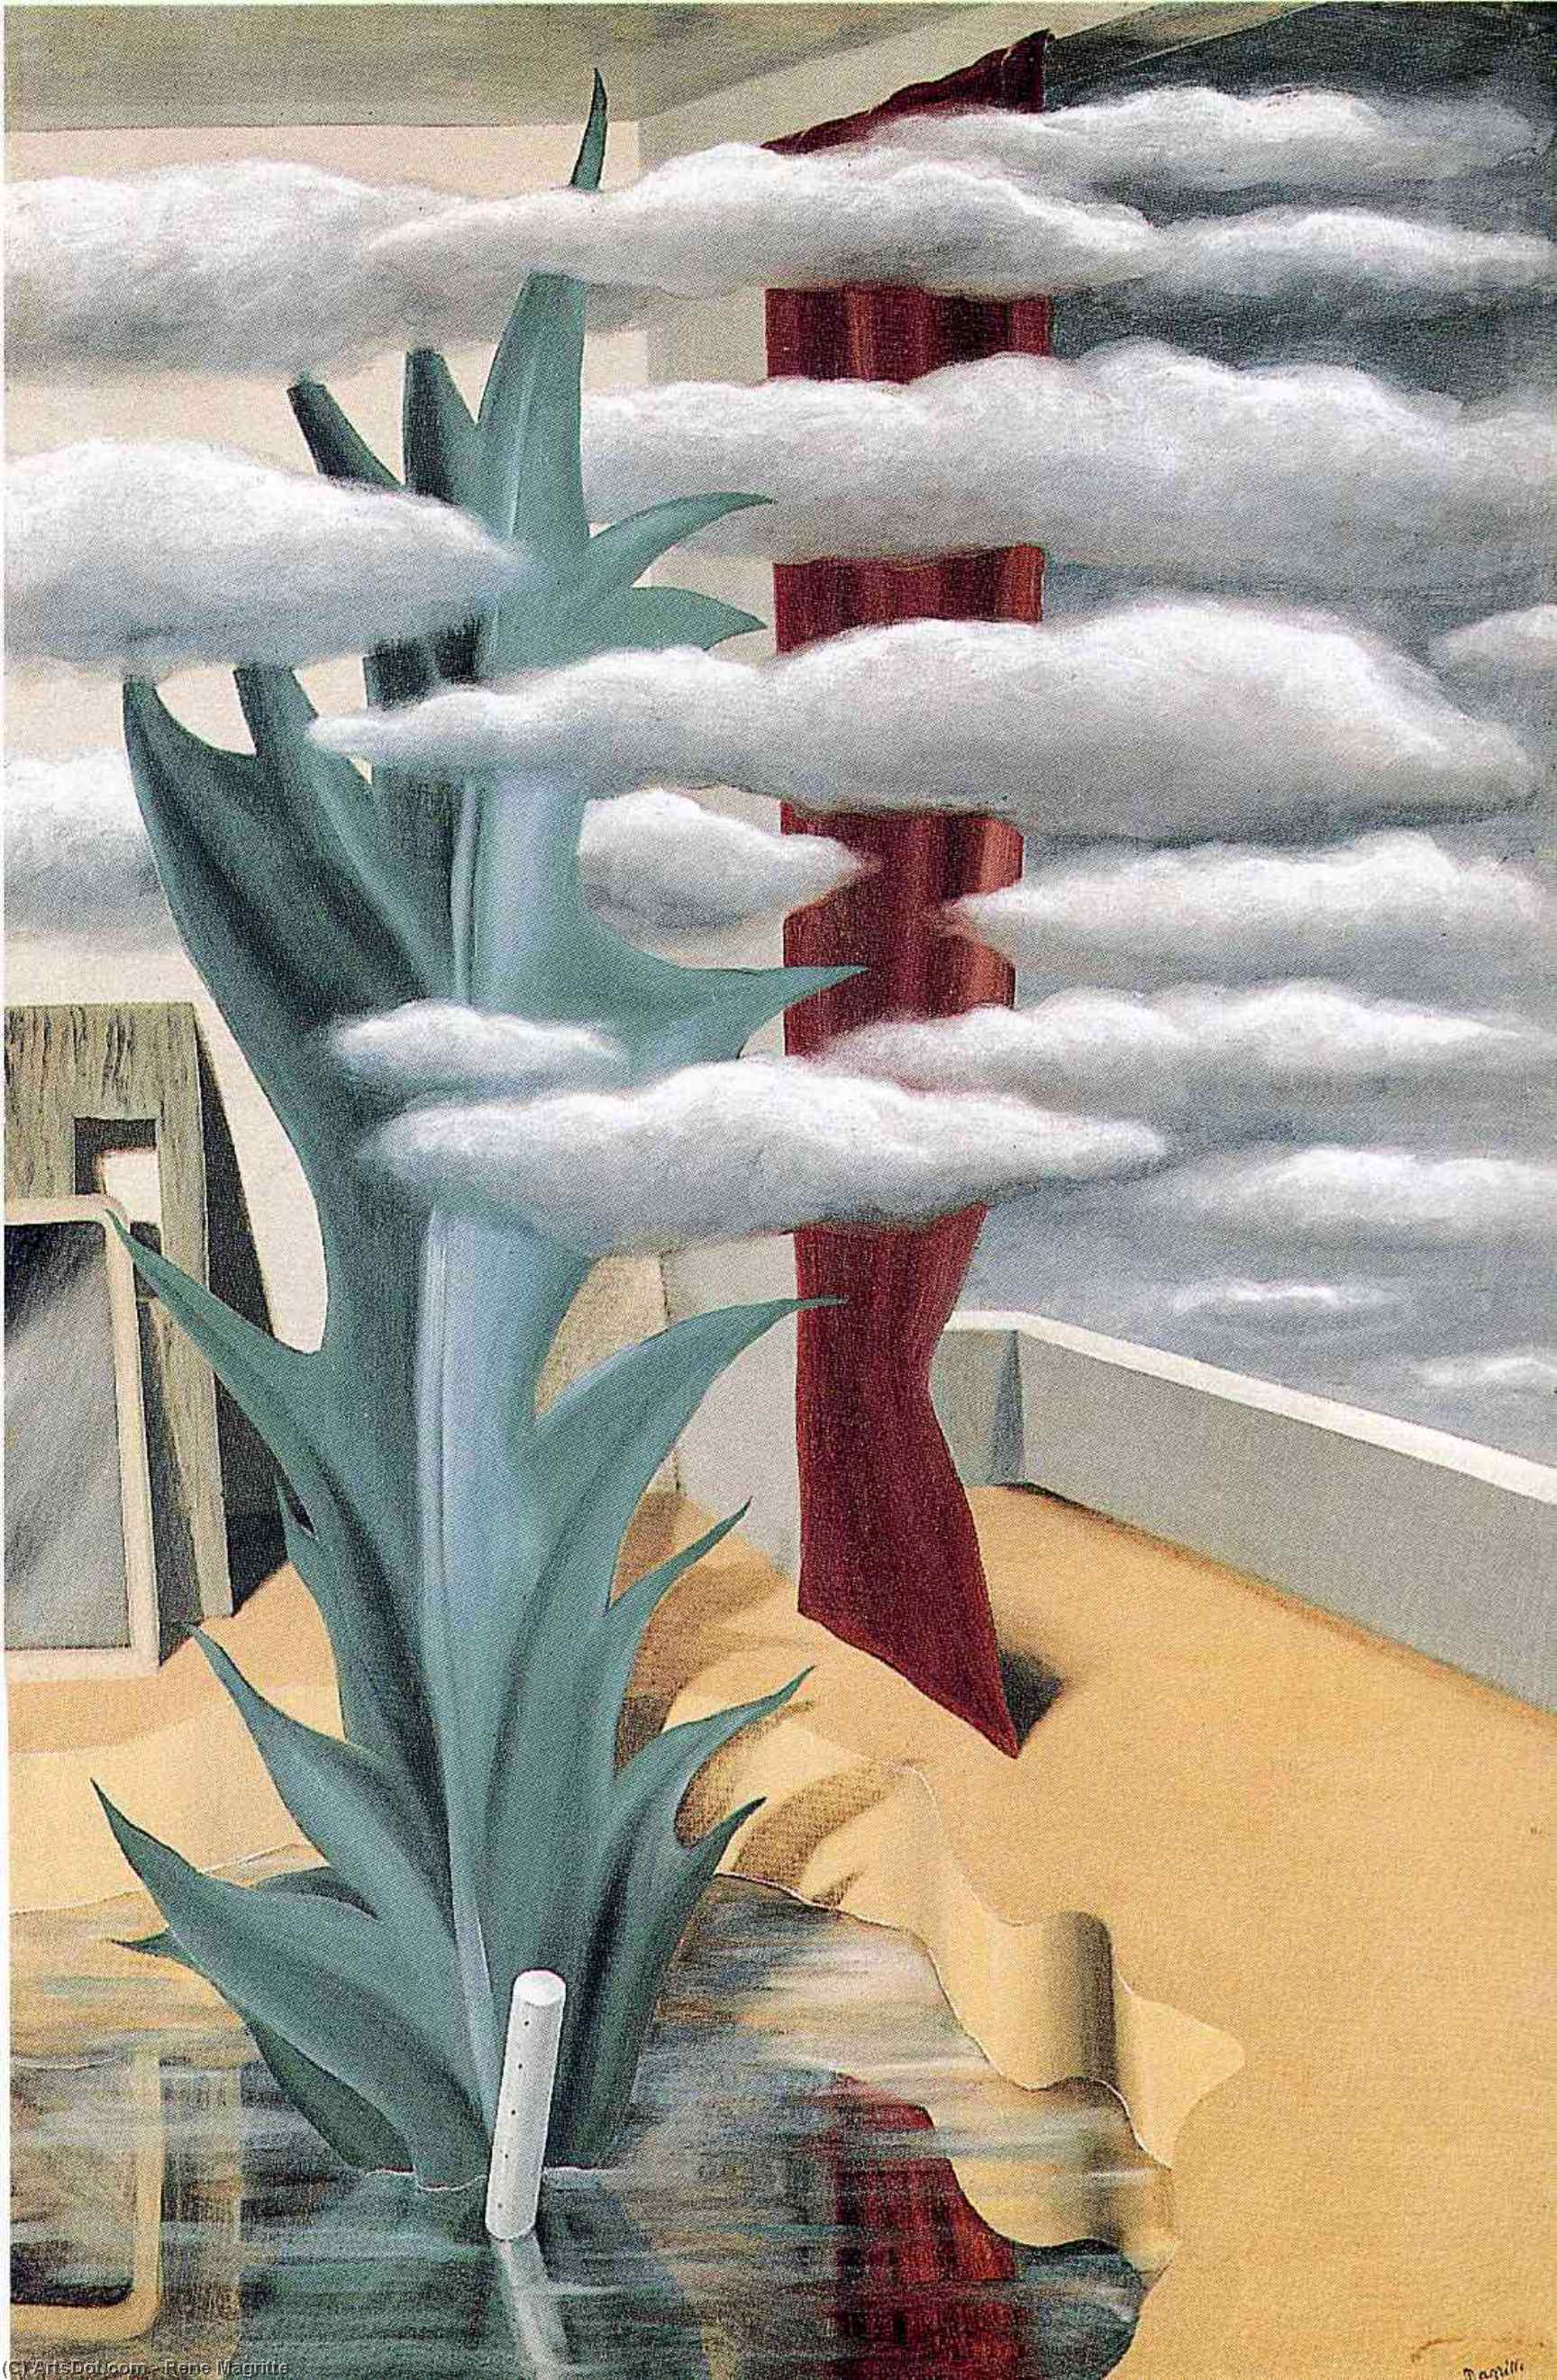 After the Water, the Clouds, 1926 by Rene Magritte (1898-1967, Belgium)